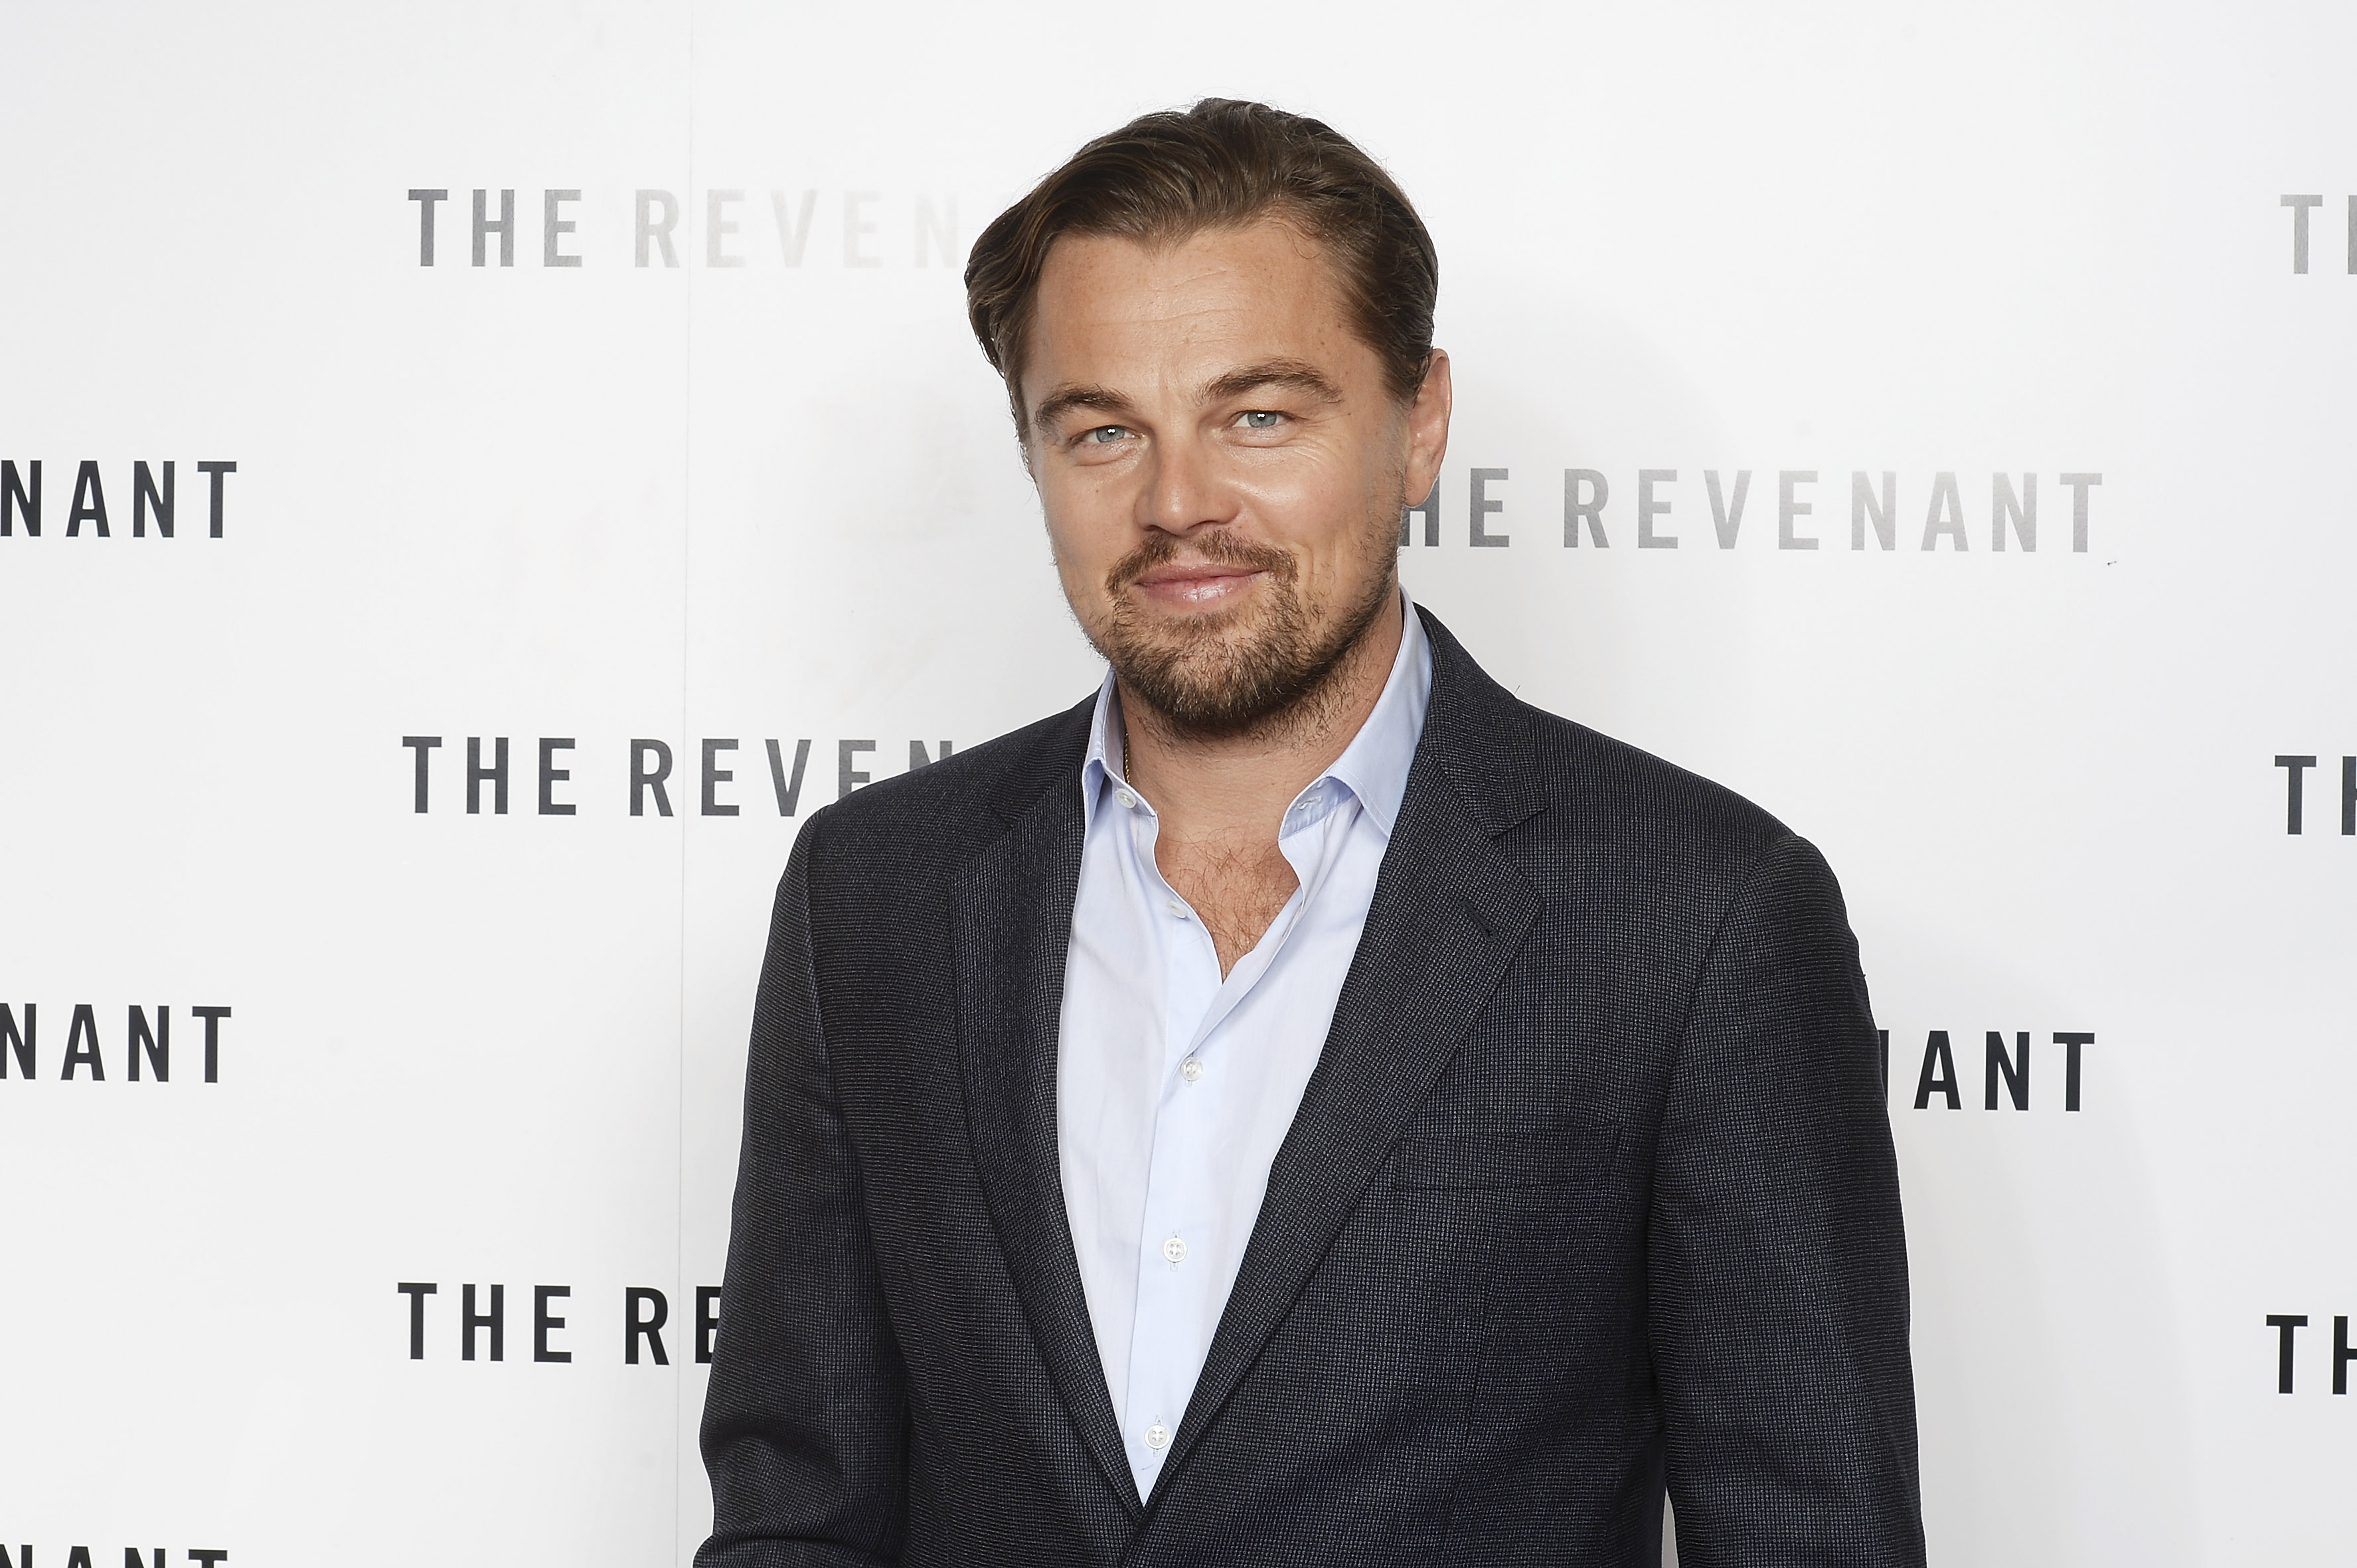 Leonardo DiCaprio attends a BAFTA screening of 'The Revenant' at Empire Leicester Square on December 6, 2015, in London.